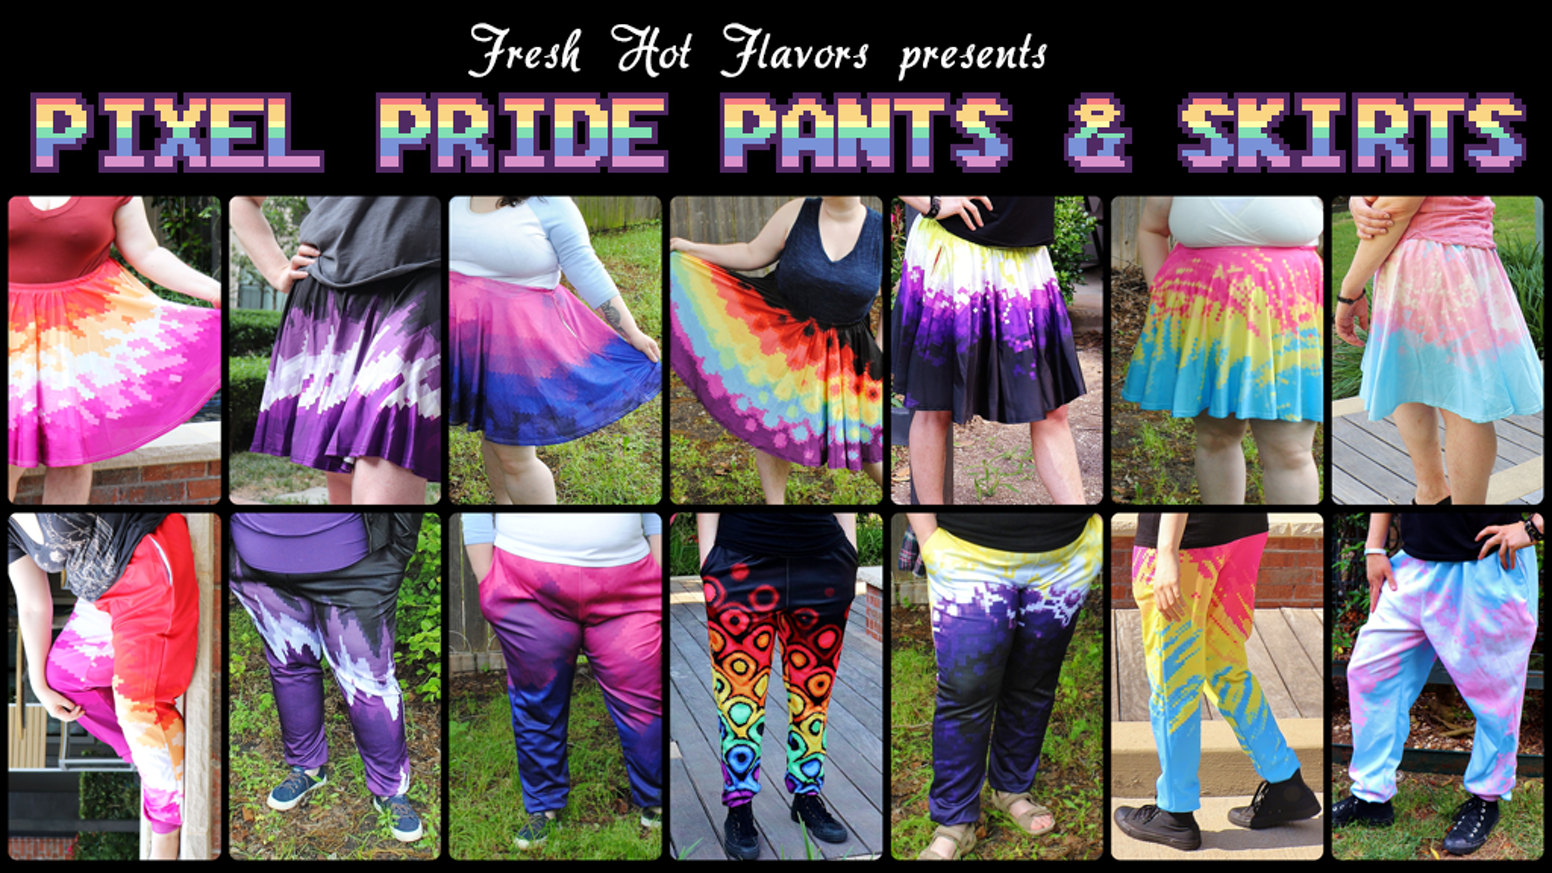 A line of jogger-style pants and circle skirts with LGBT+ flag-inspired designs that fit a variety of body types.